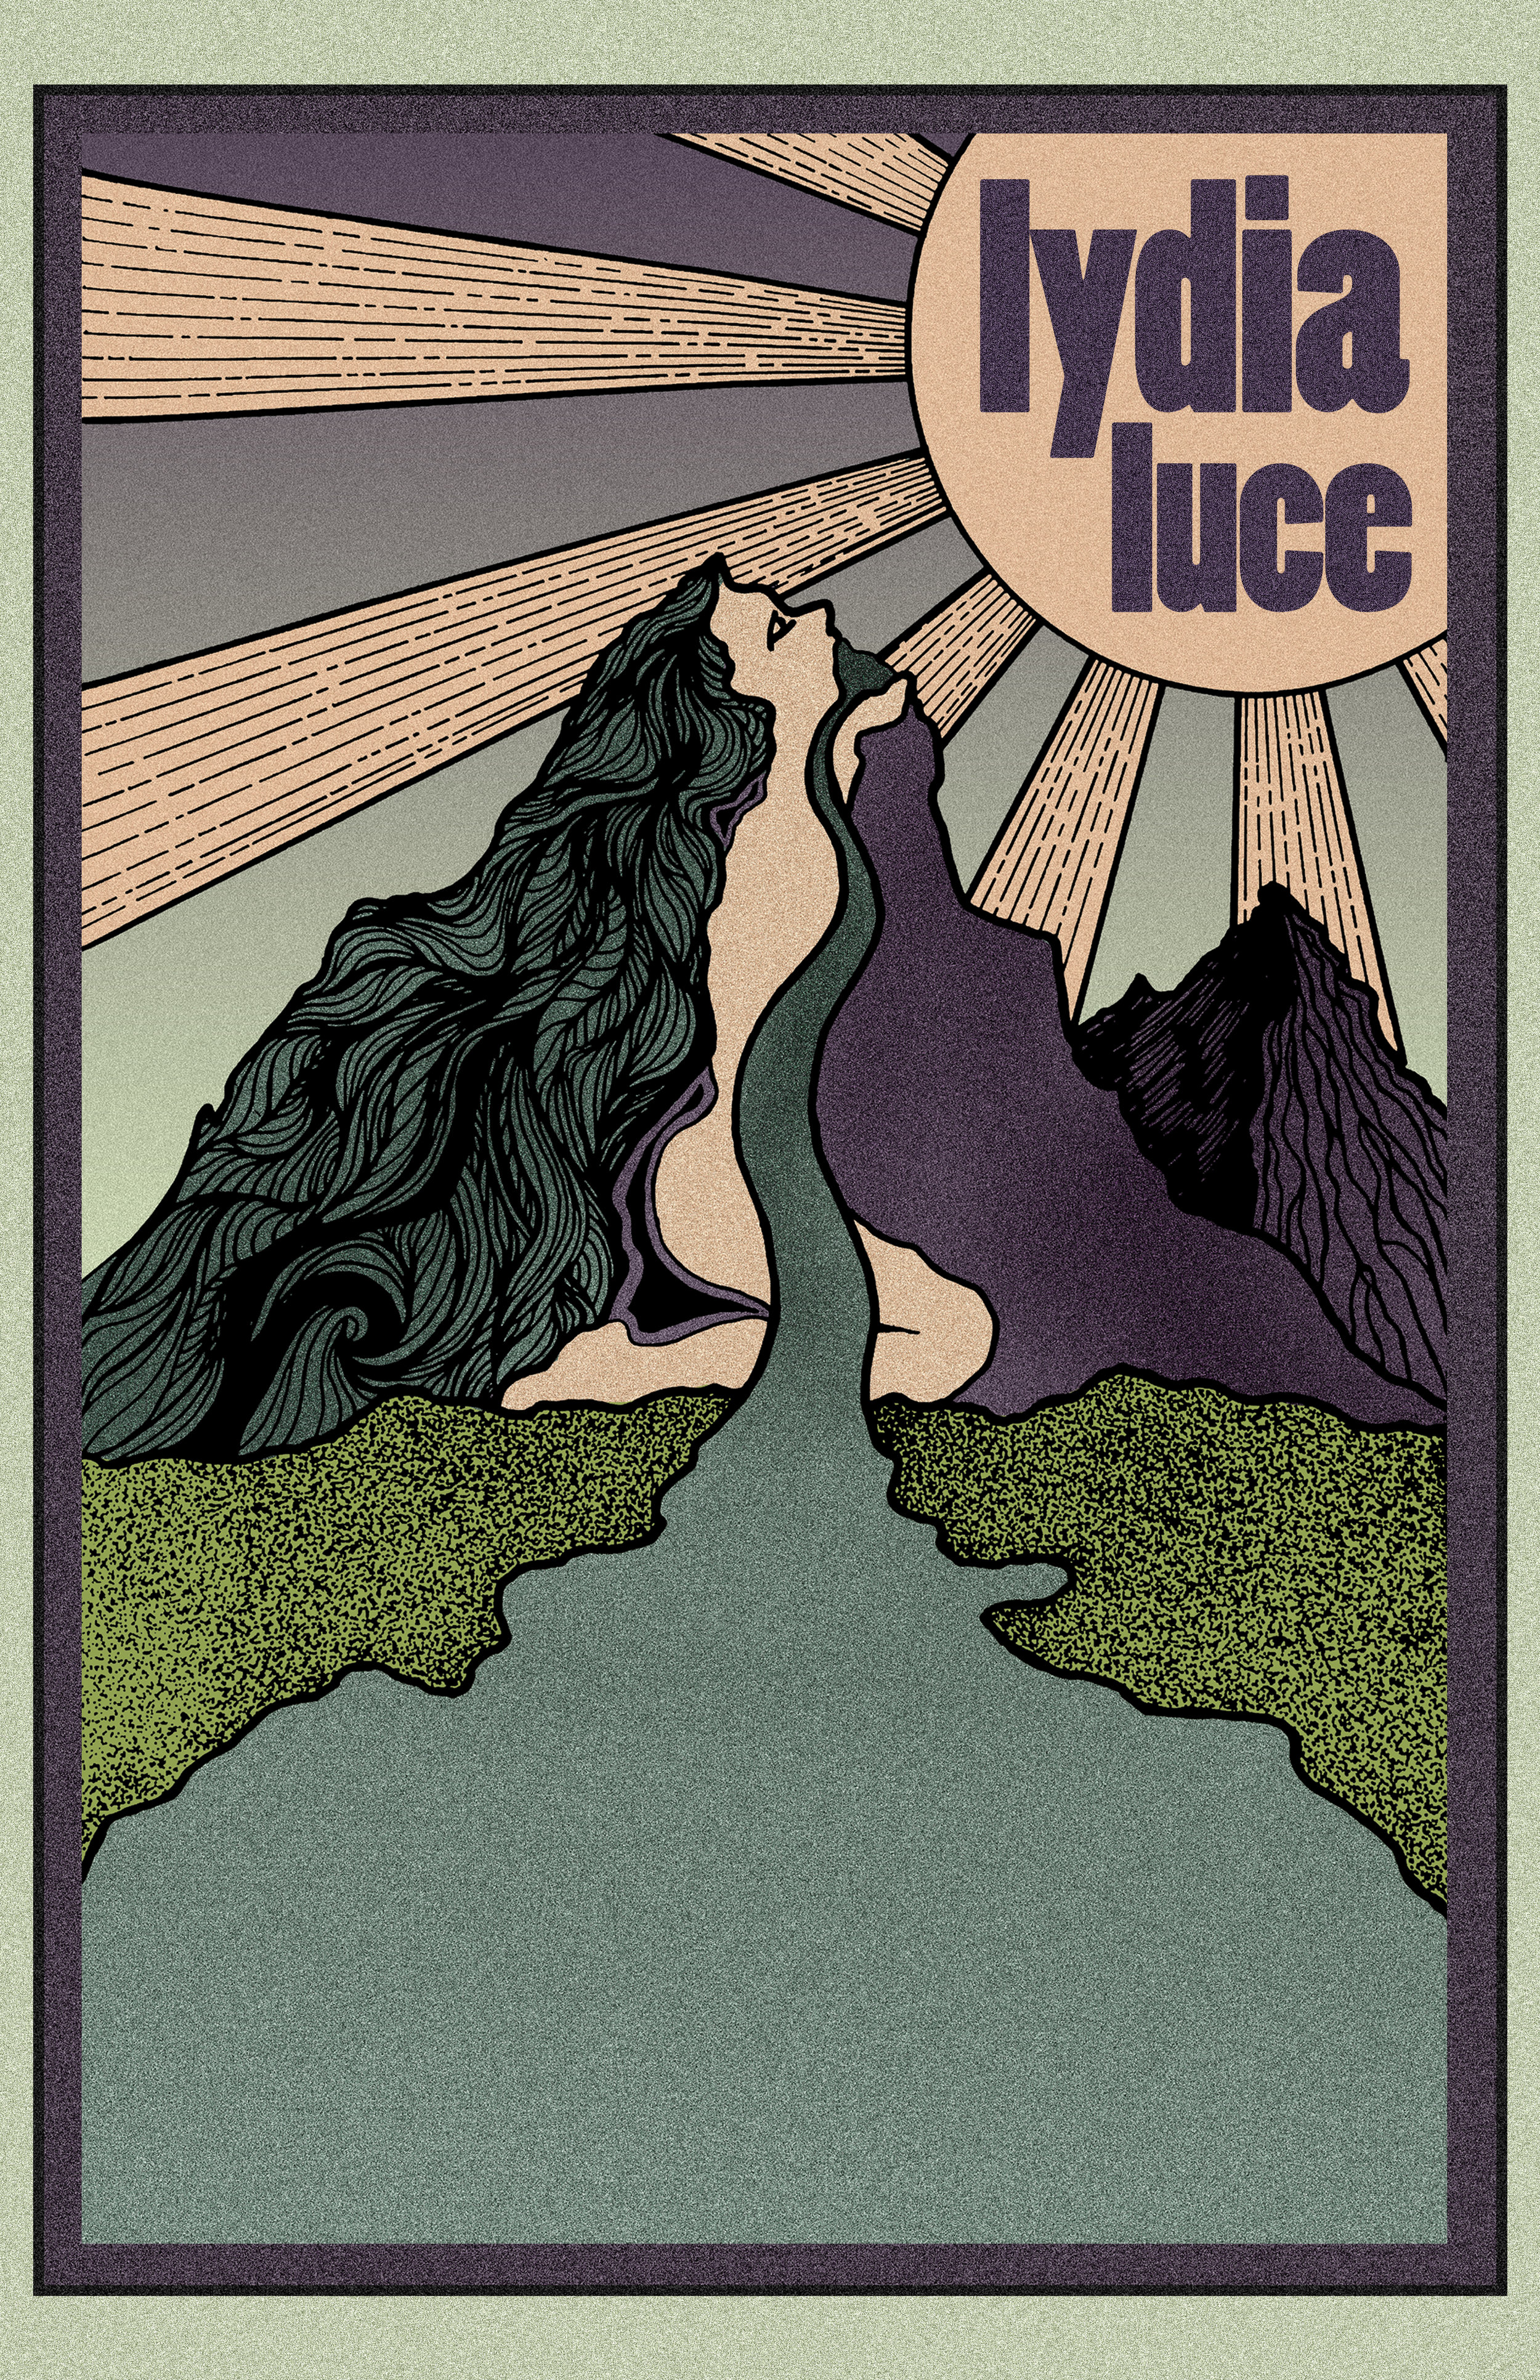 Lydia Luce Poster